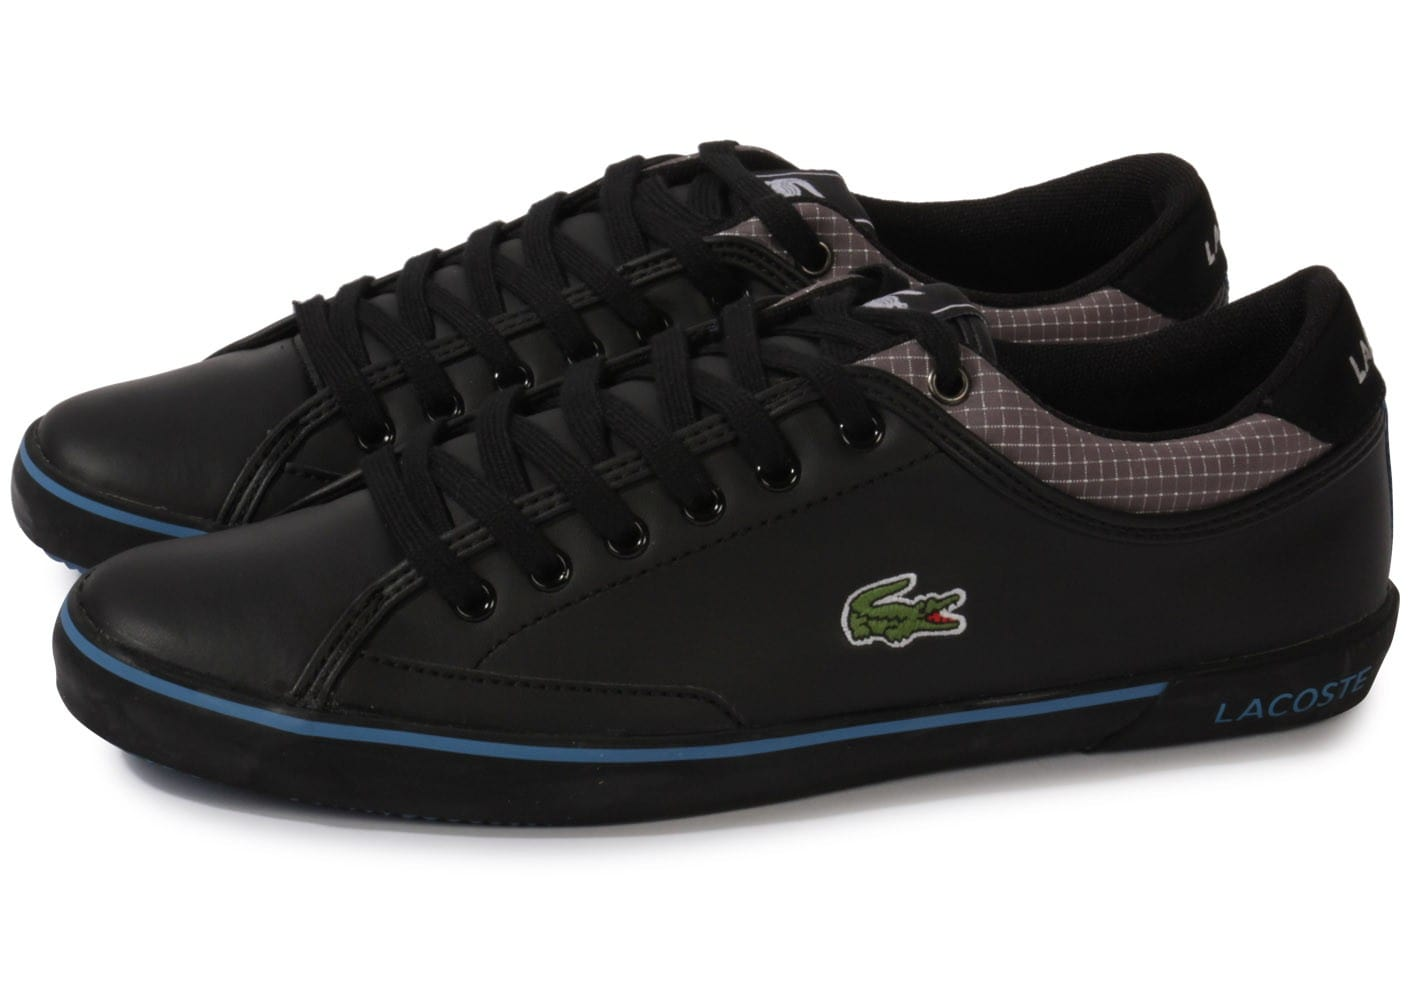 lacoste angha cuir noire chaussures homme chausport. Black Bedroom Furniture Sets. Home Design Ideas